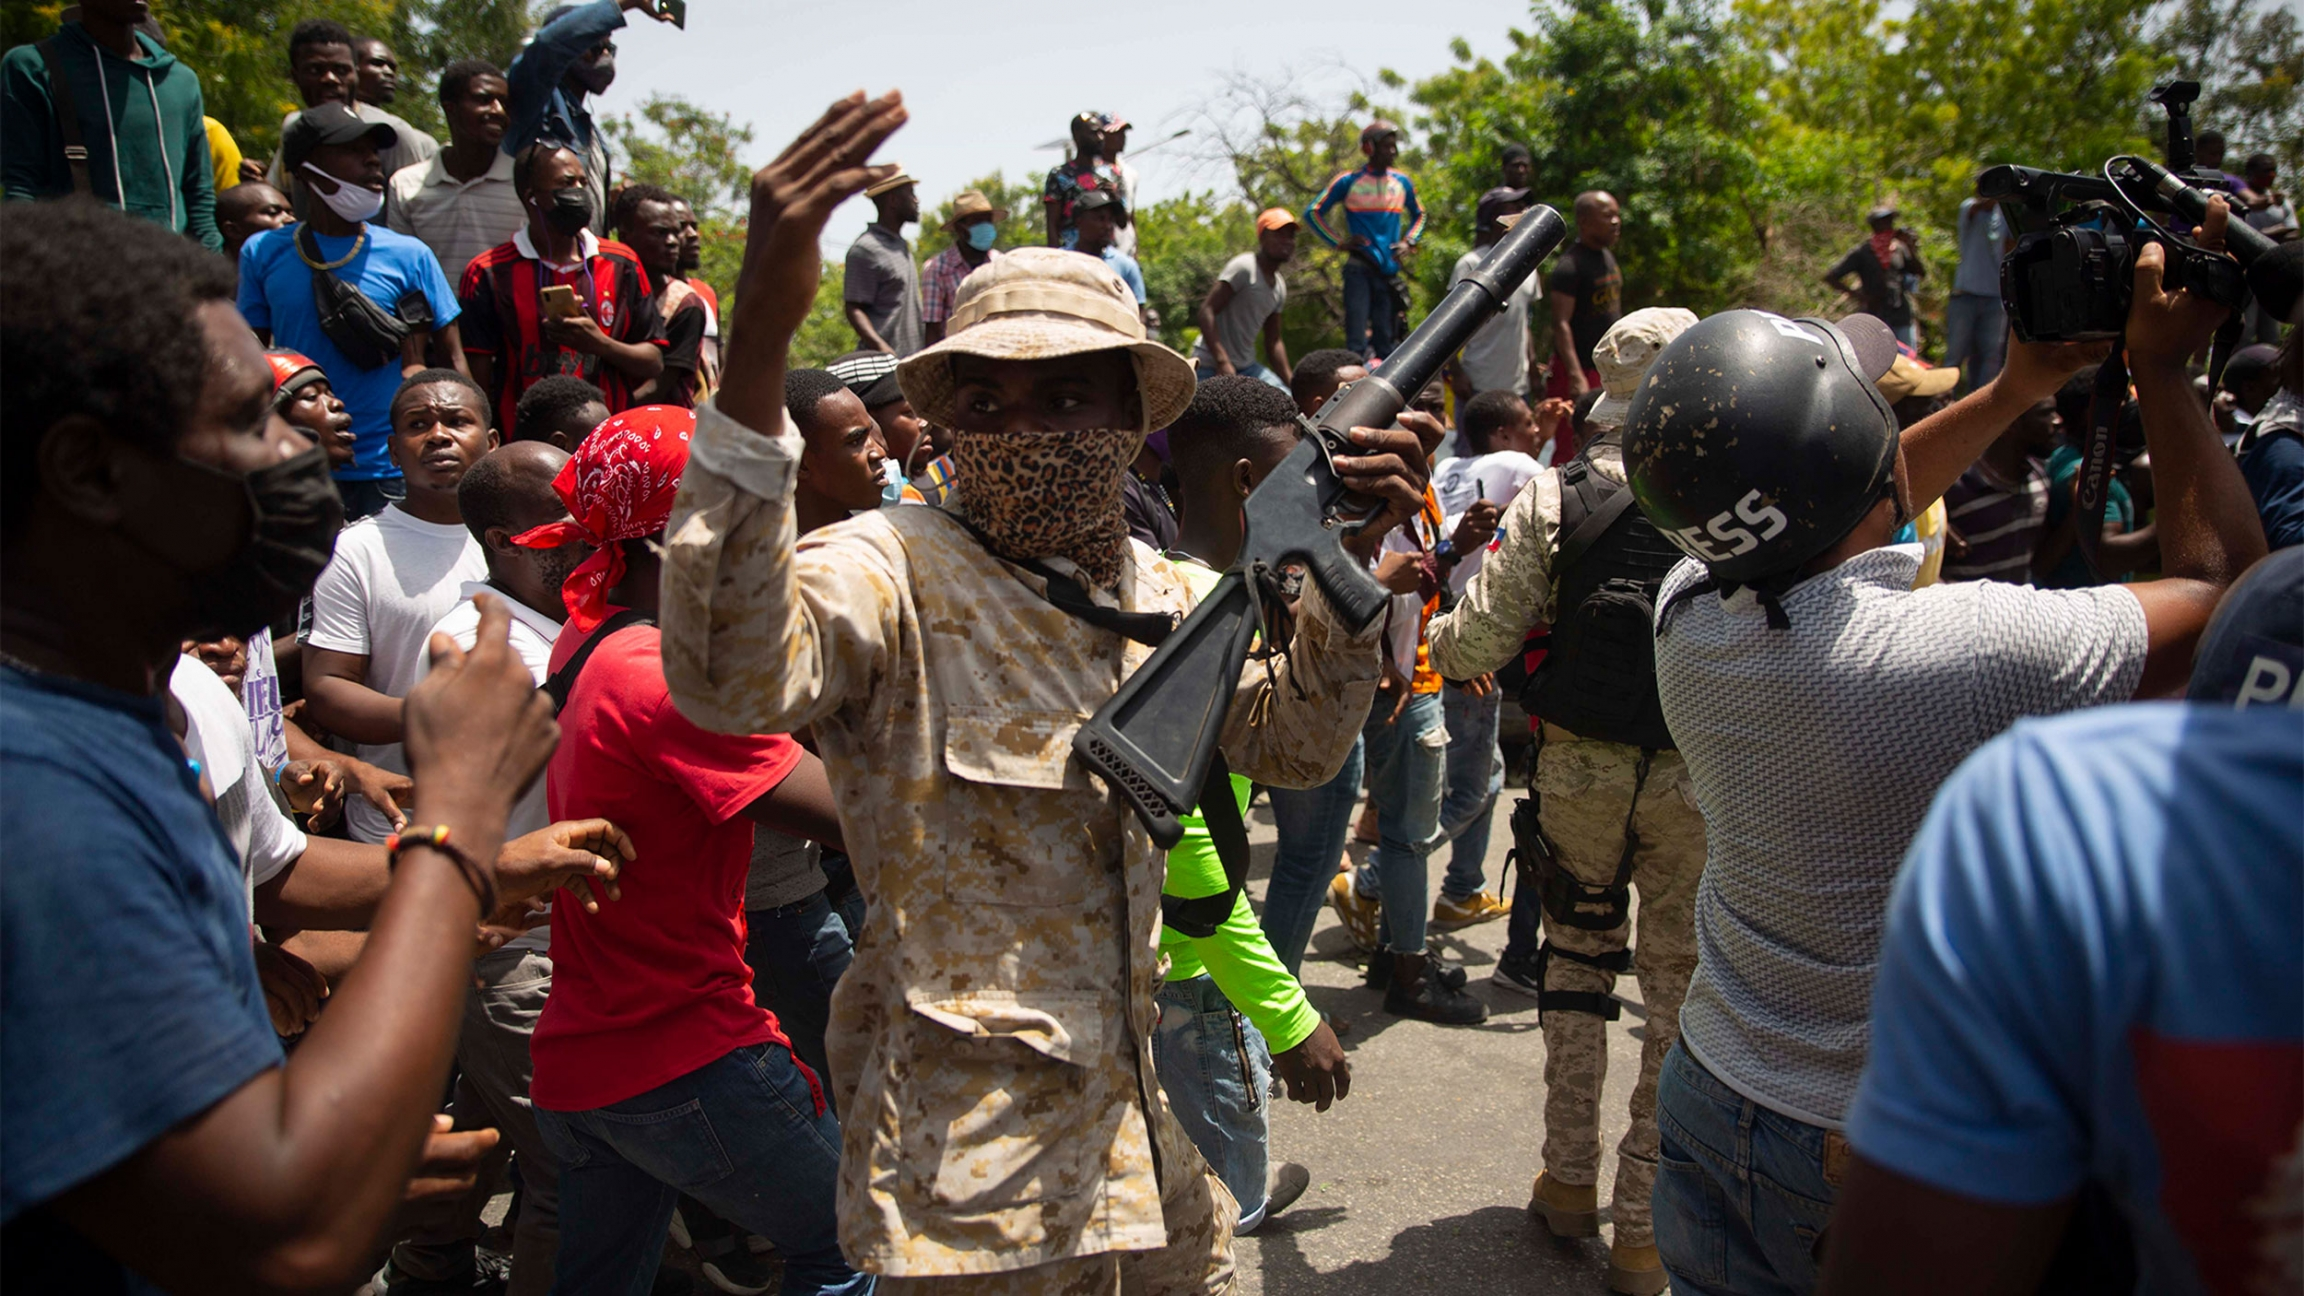 Police in camouflage stand amid a crowd protesting against the assassination of Haitian President Jovenel Moïse